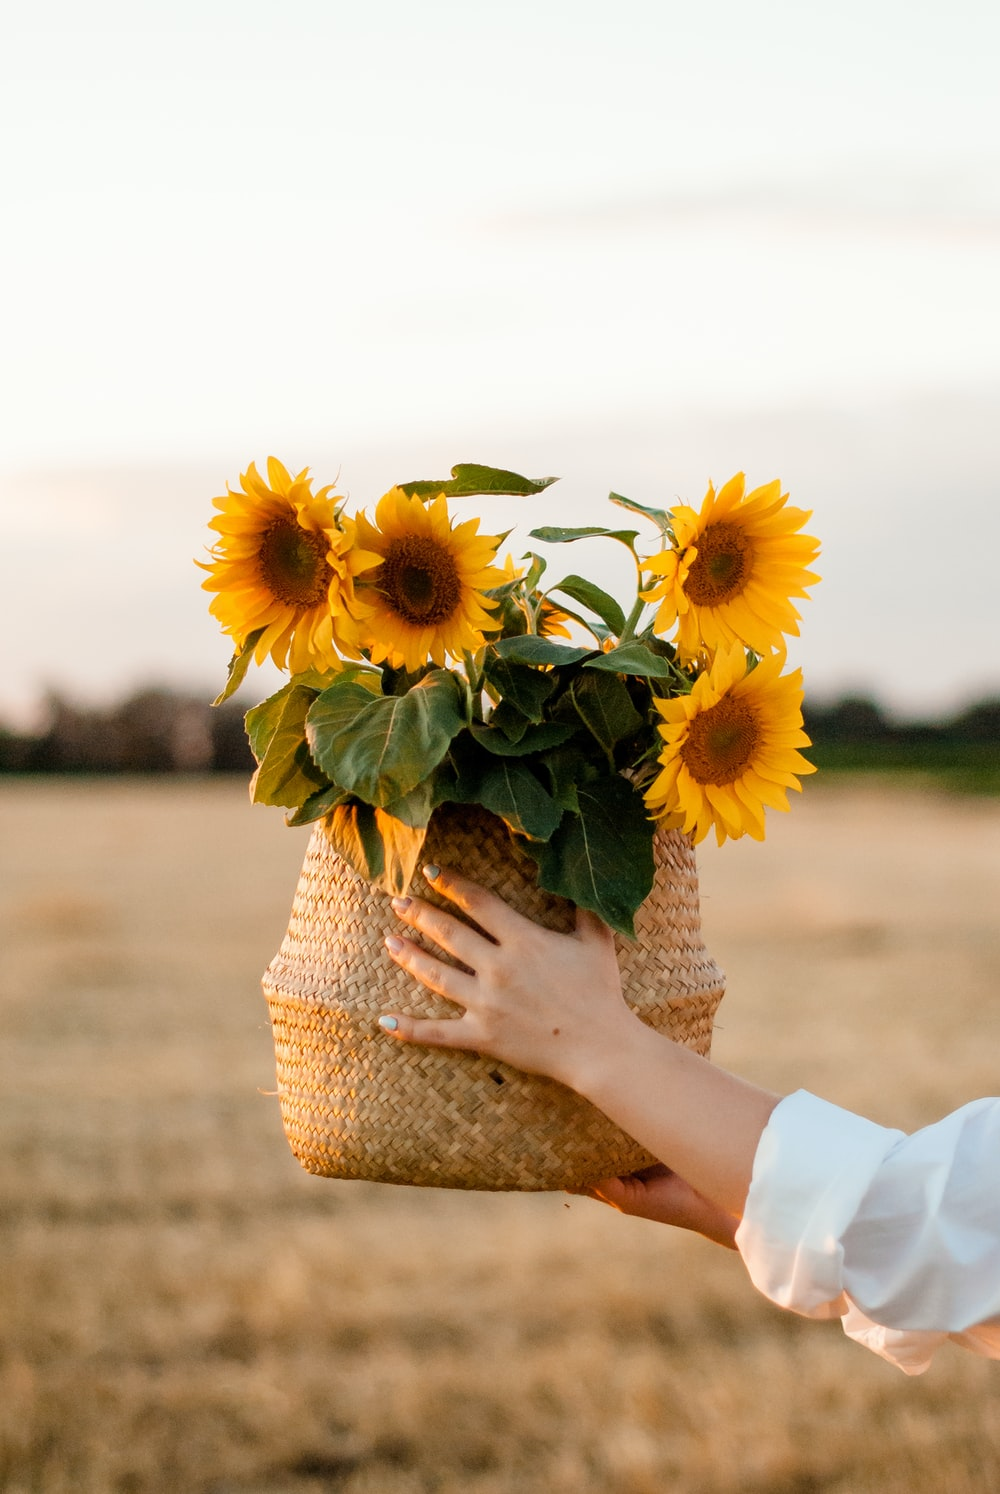 person holding sunflower bouquet during daytime